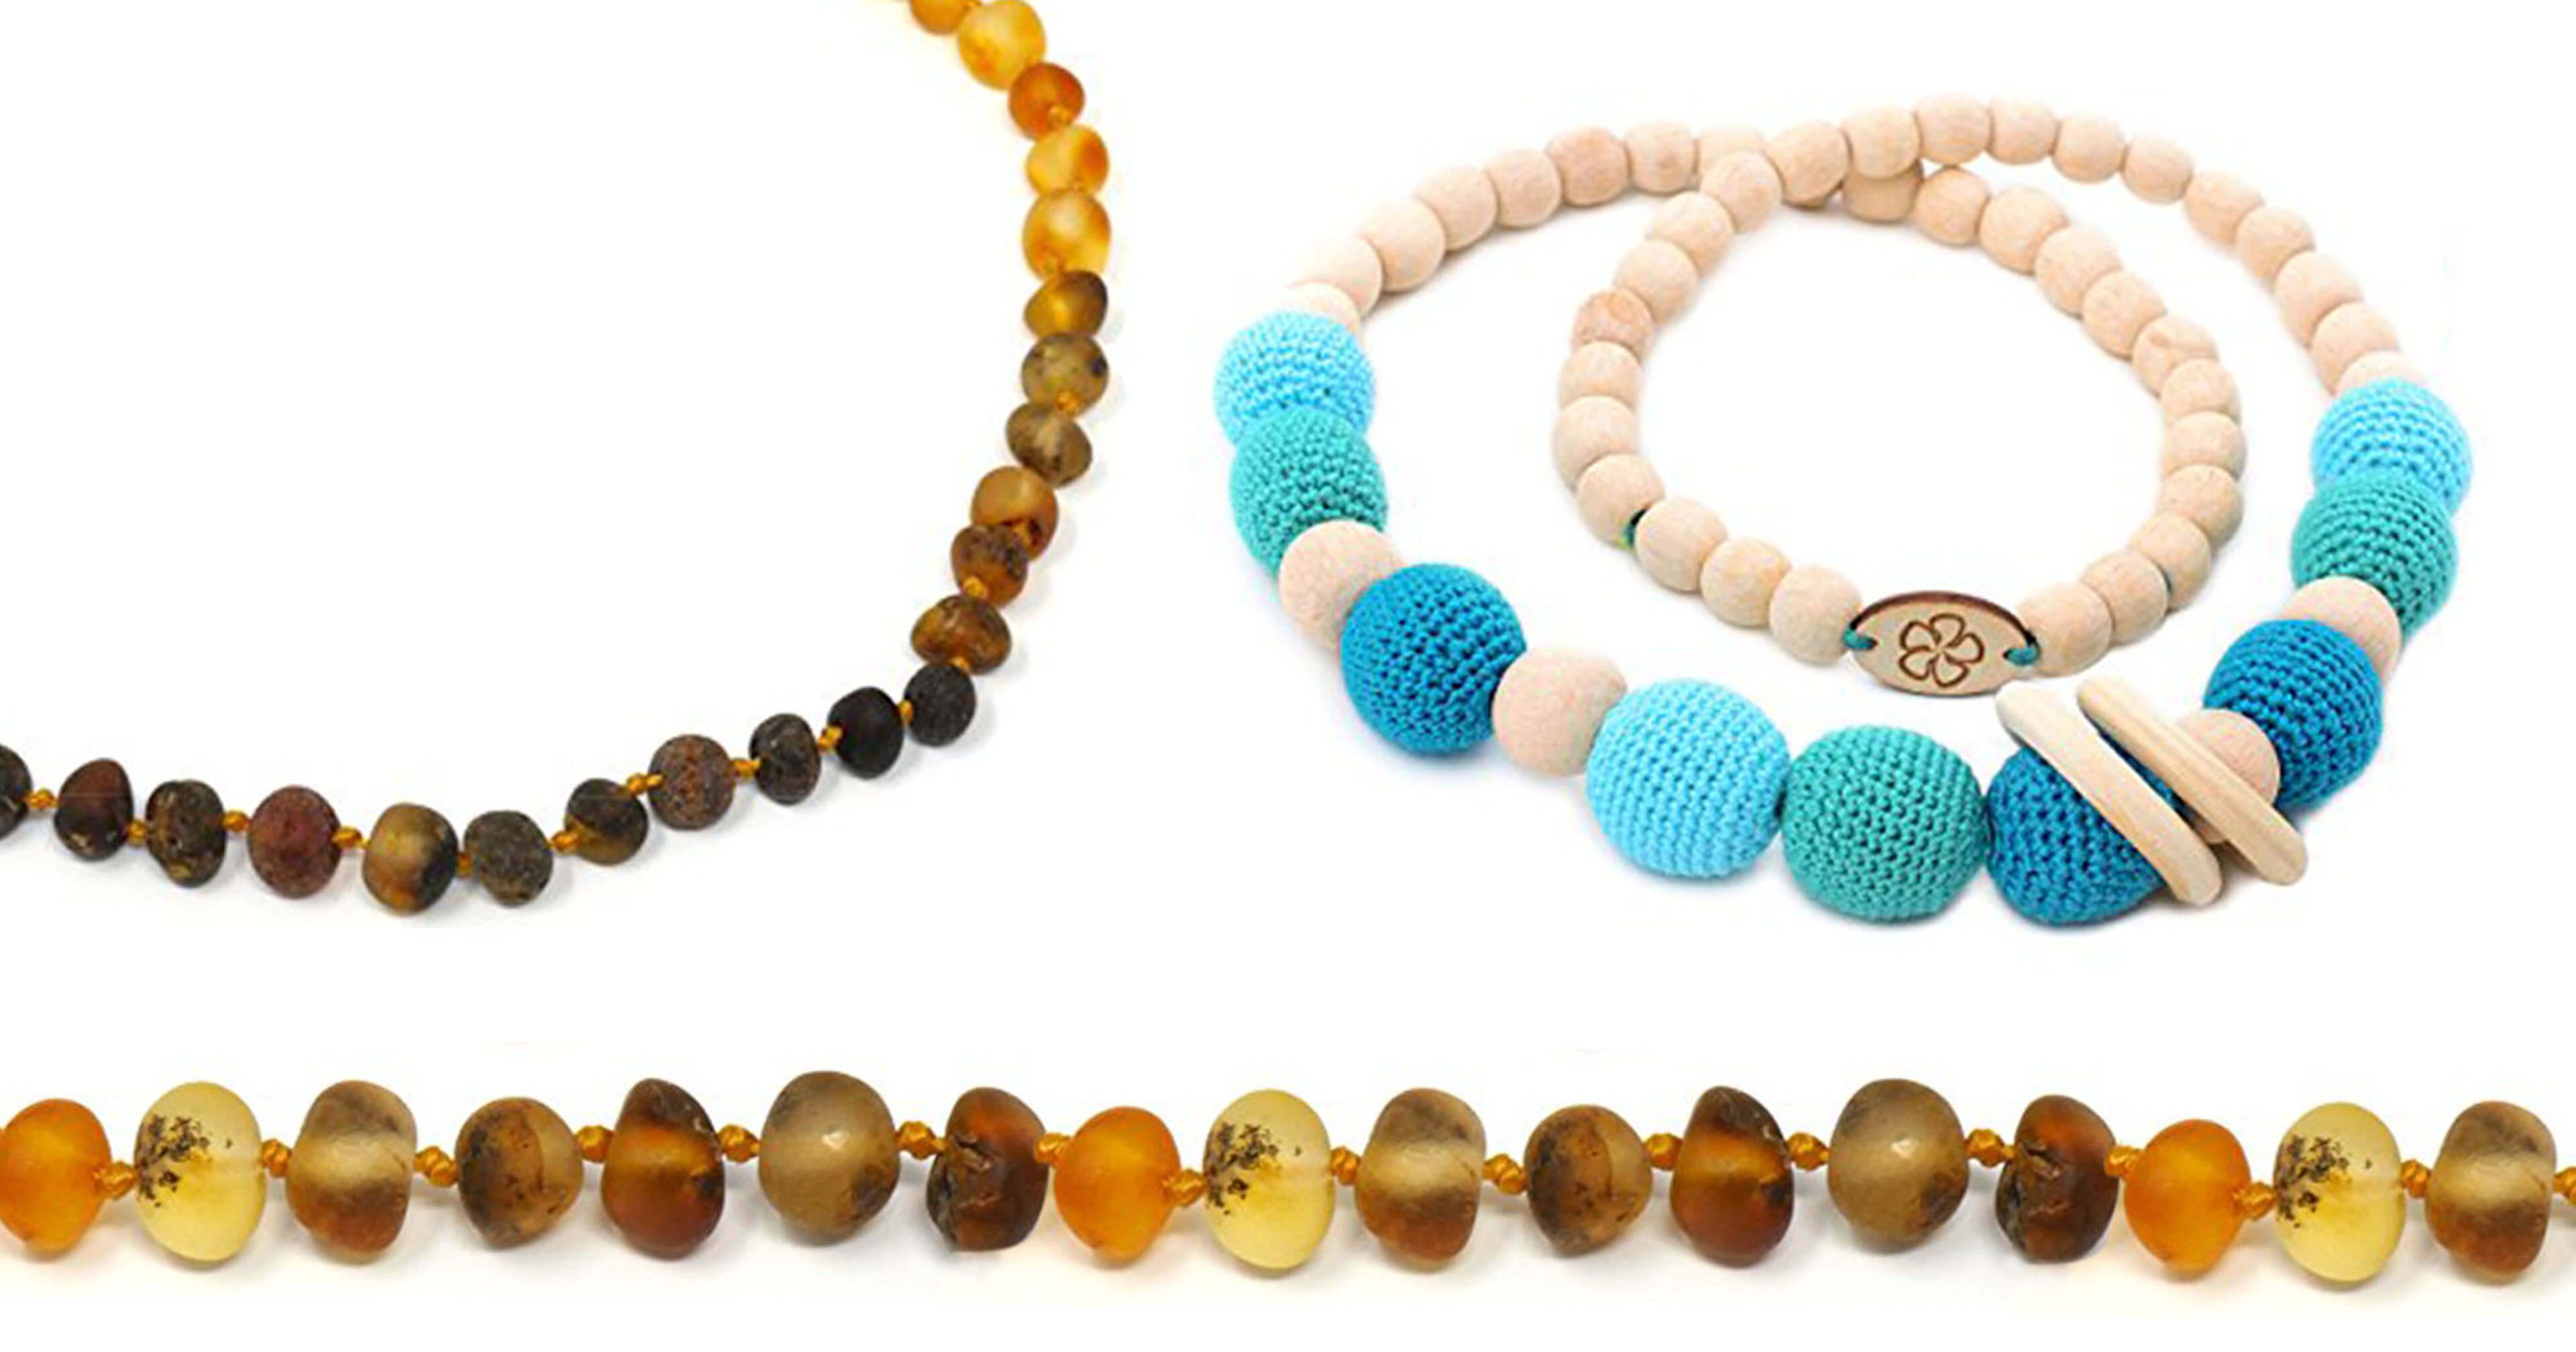 Teething Necklaces Which Are Best For